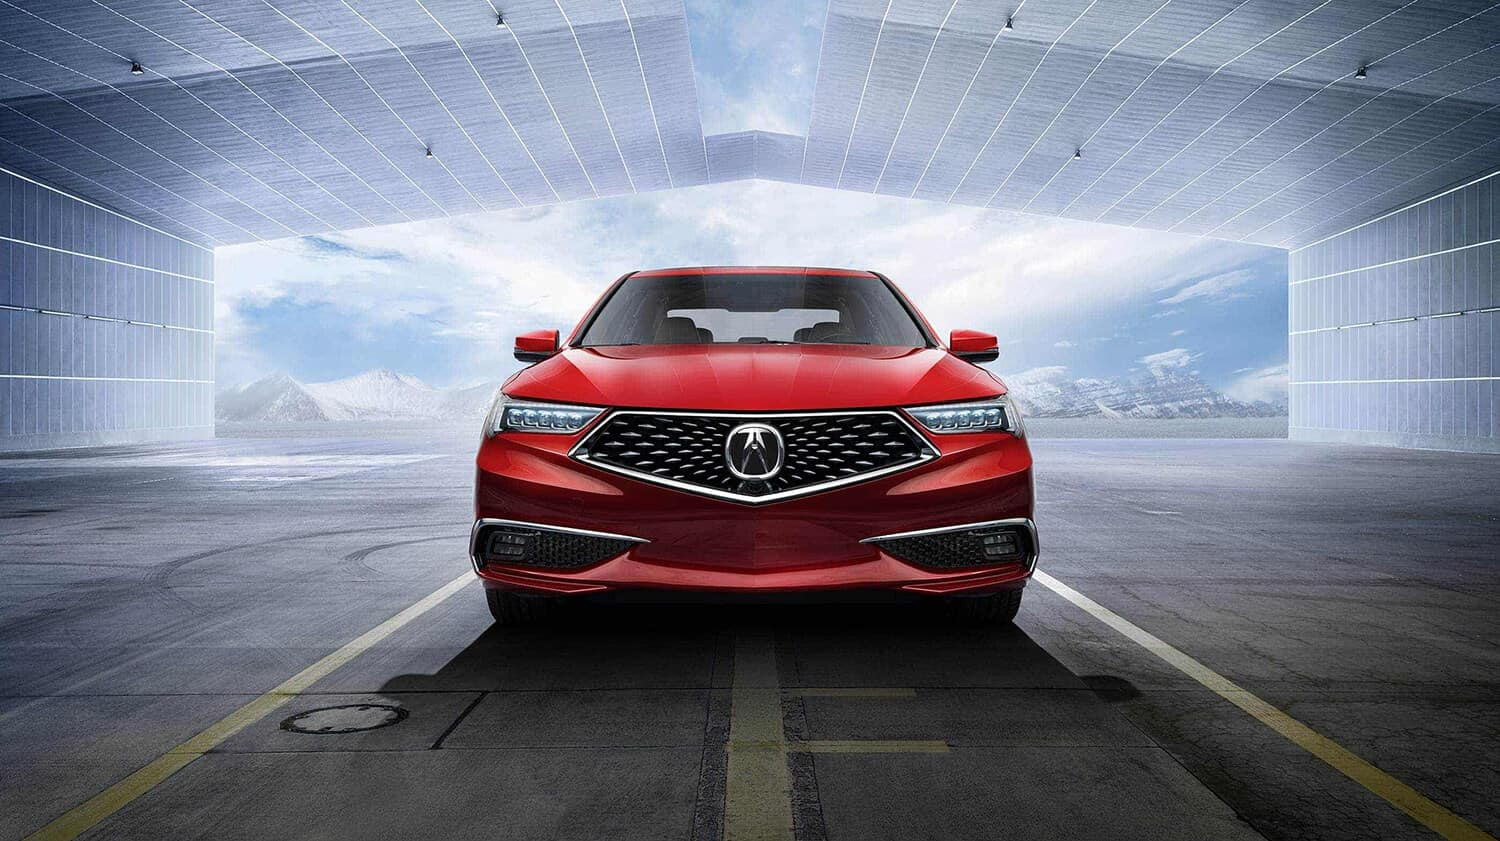 2019 Acura TLX Exterior Front Facing Red